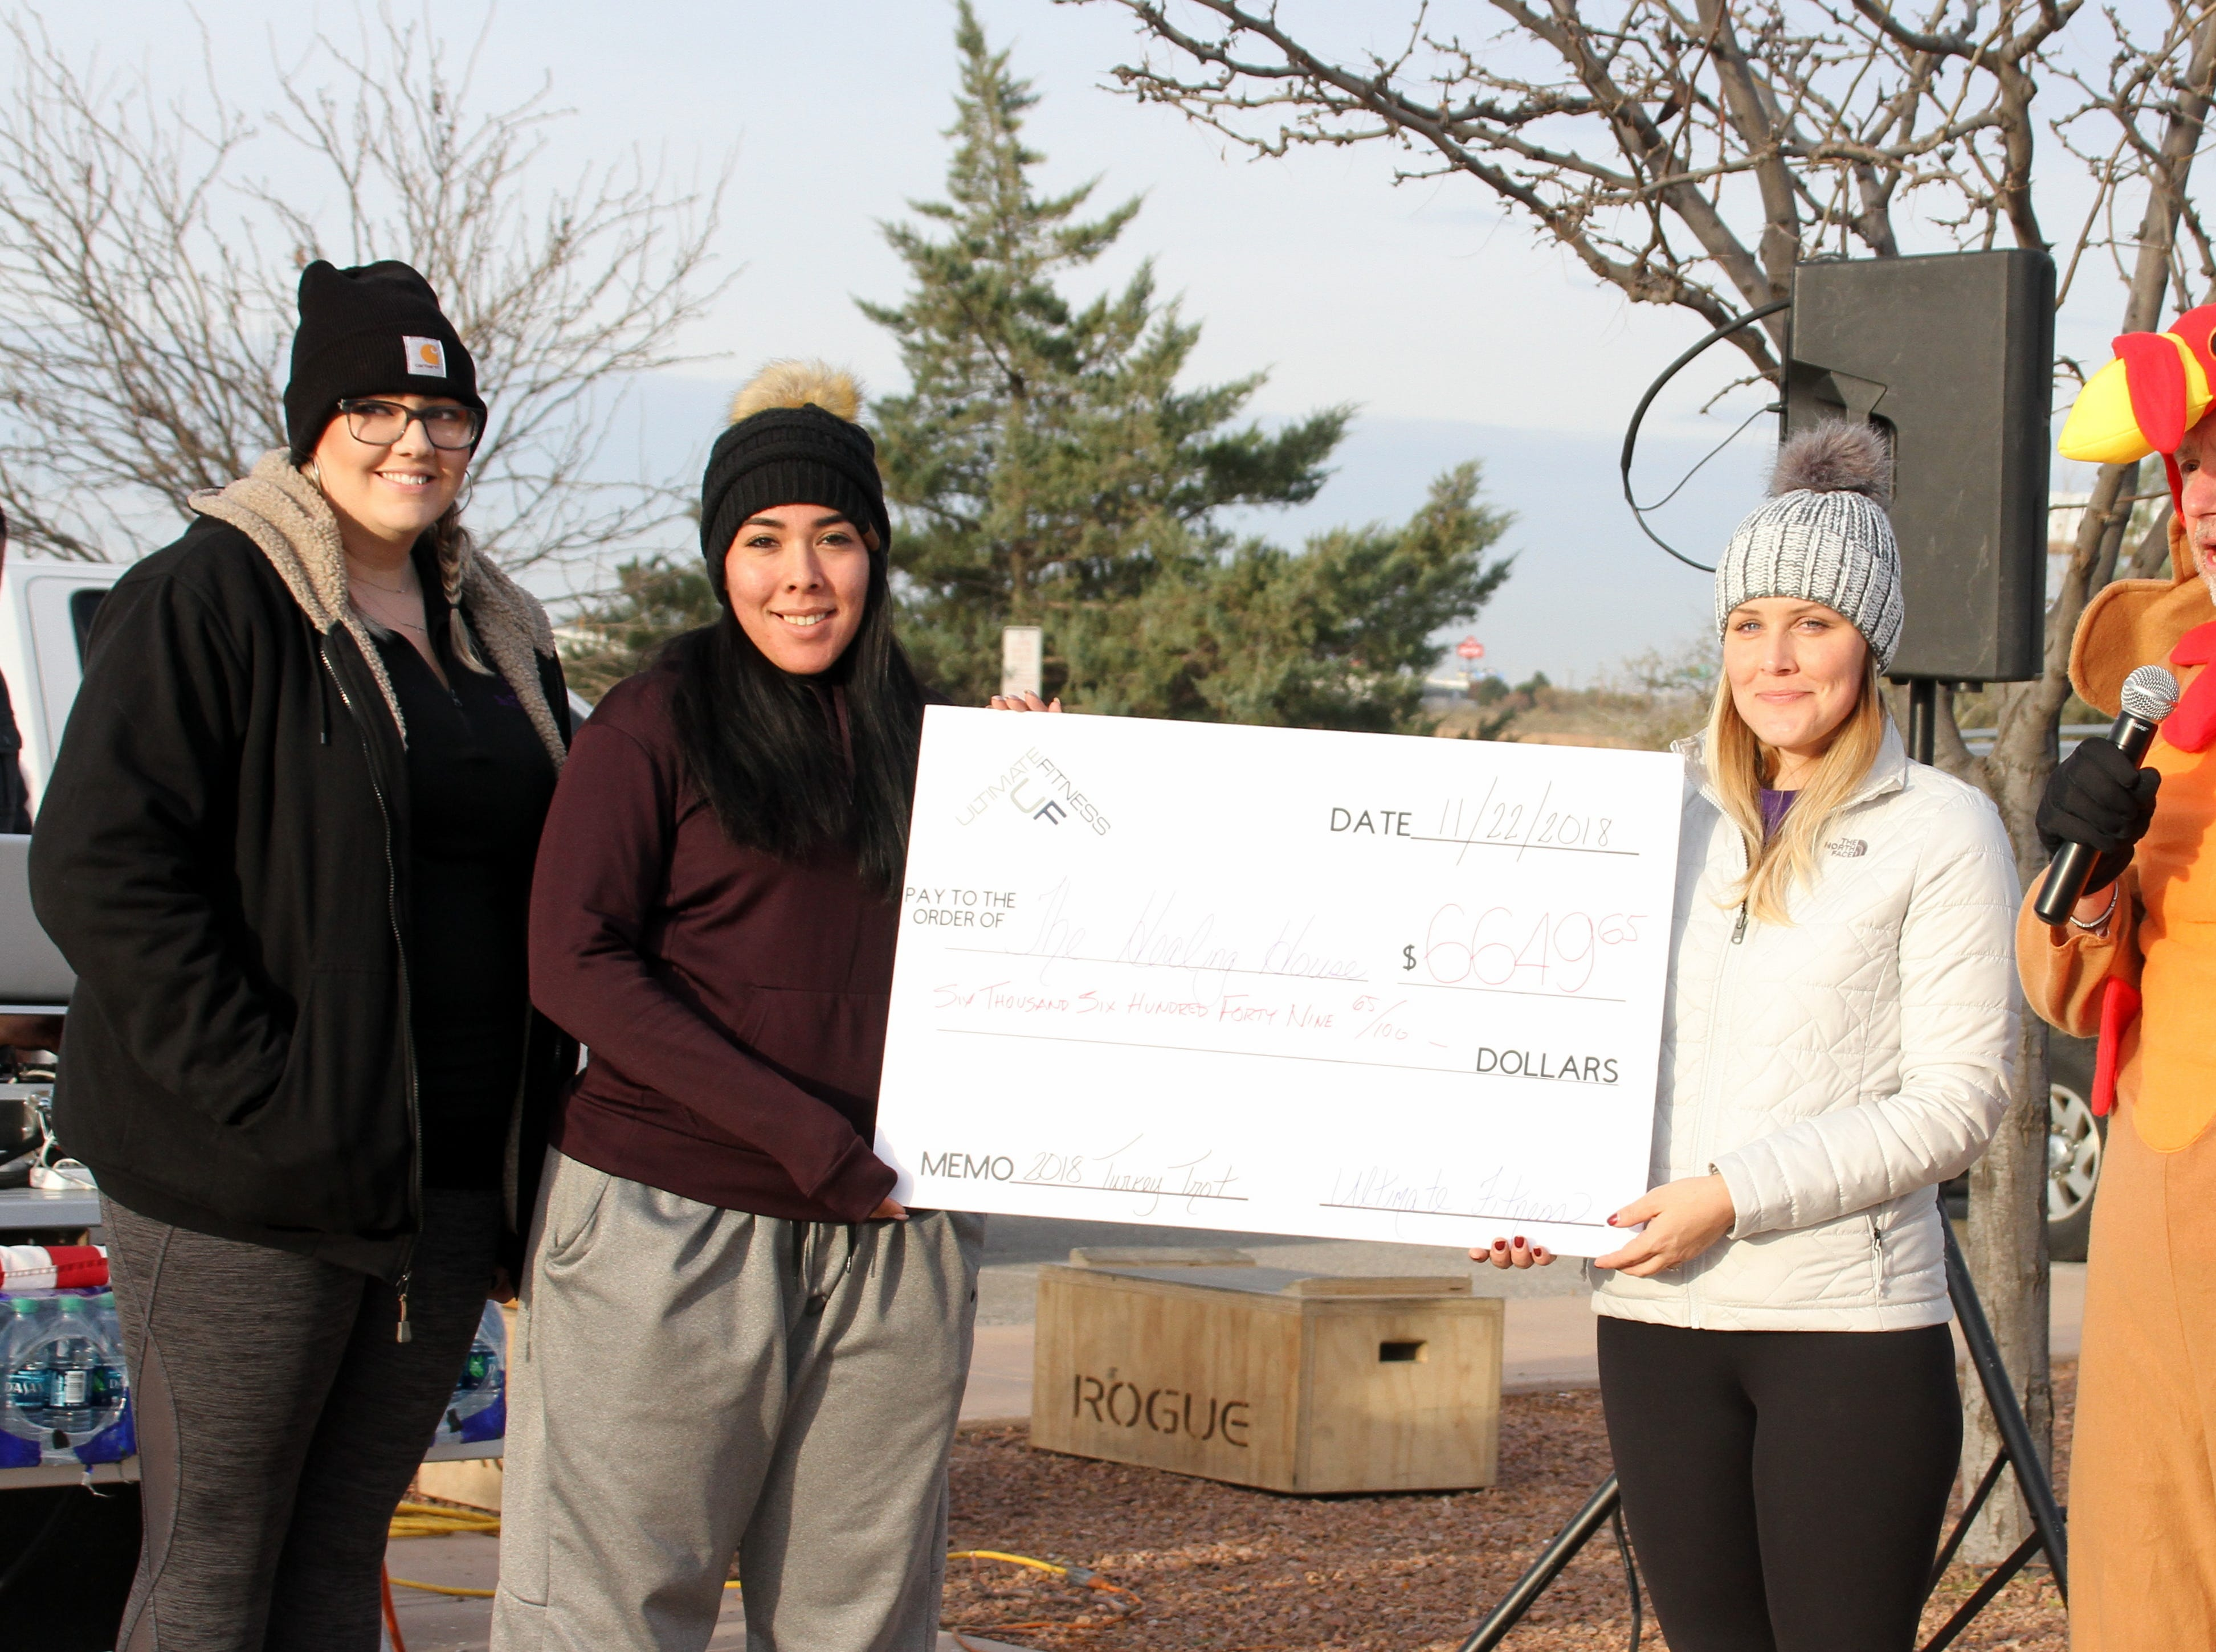 The Healing House, Luna County's shelter for victims of domestic violence, received a check for $6,649.